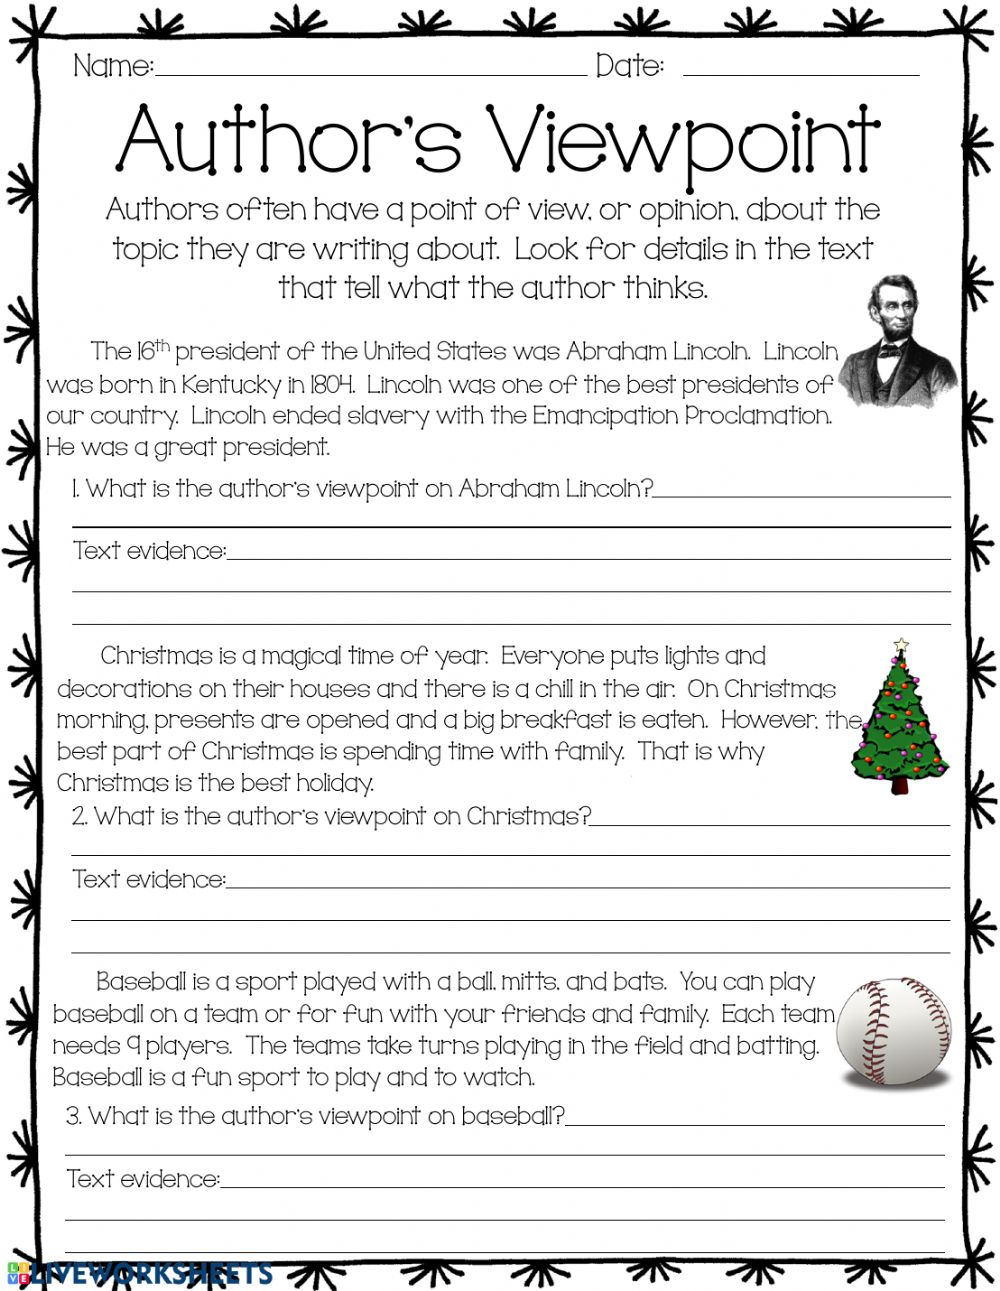 hight resolution of Author's Viewpoint worksheet